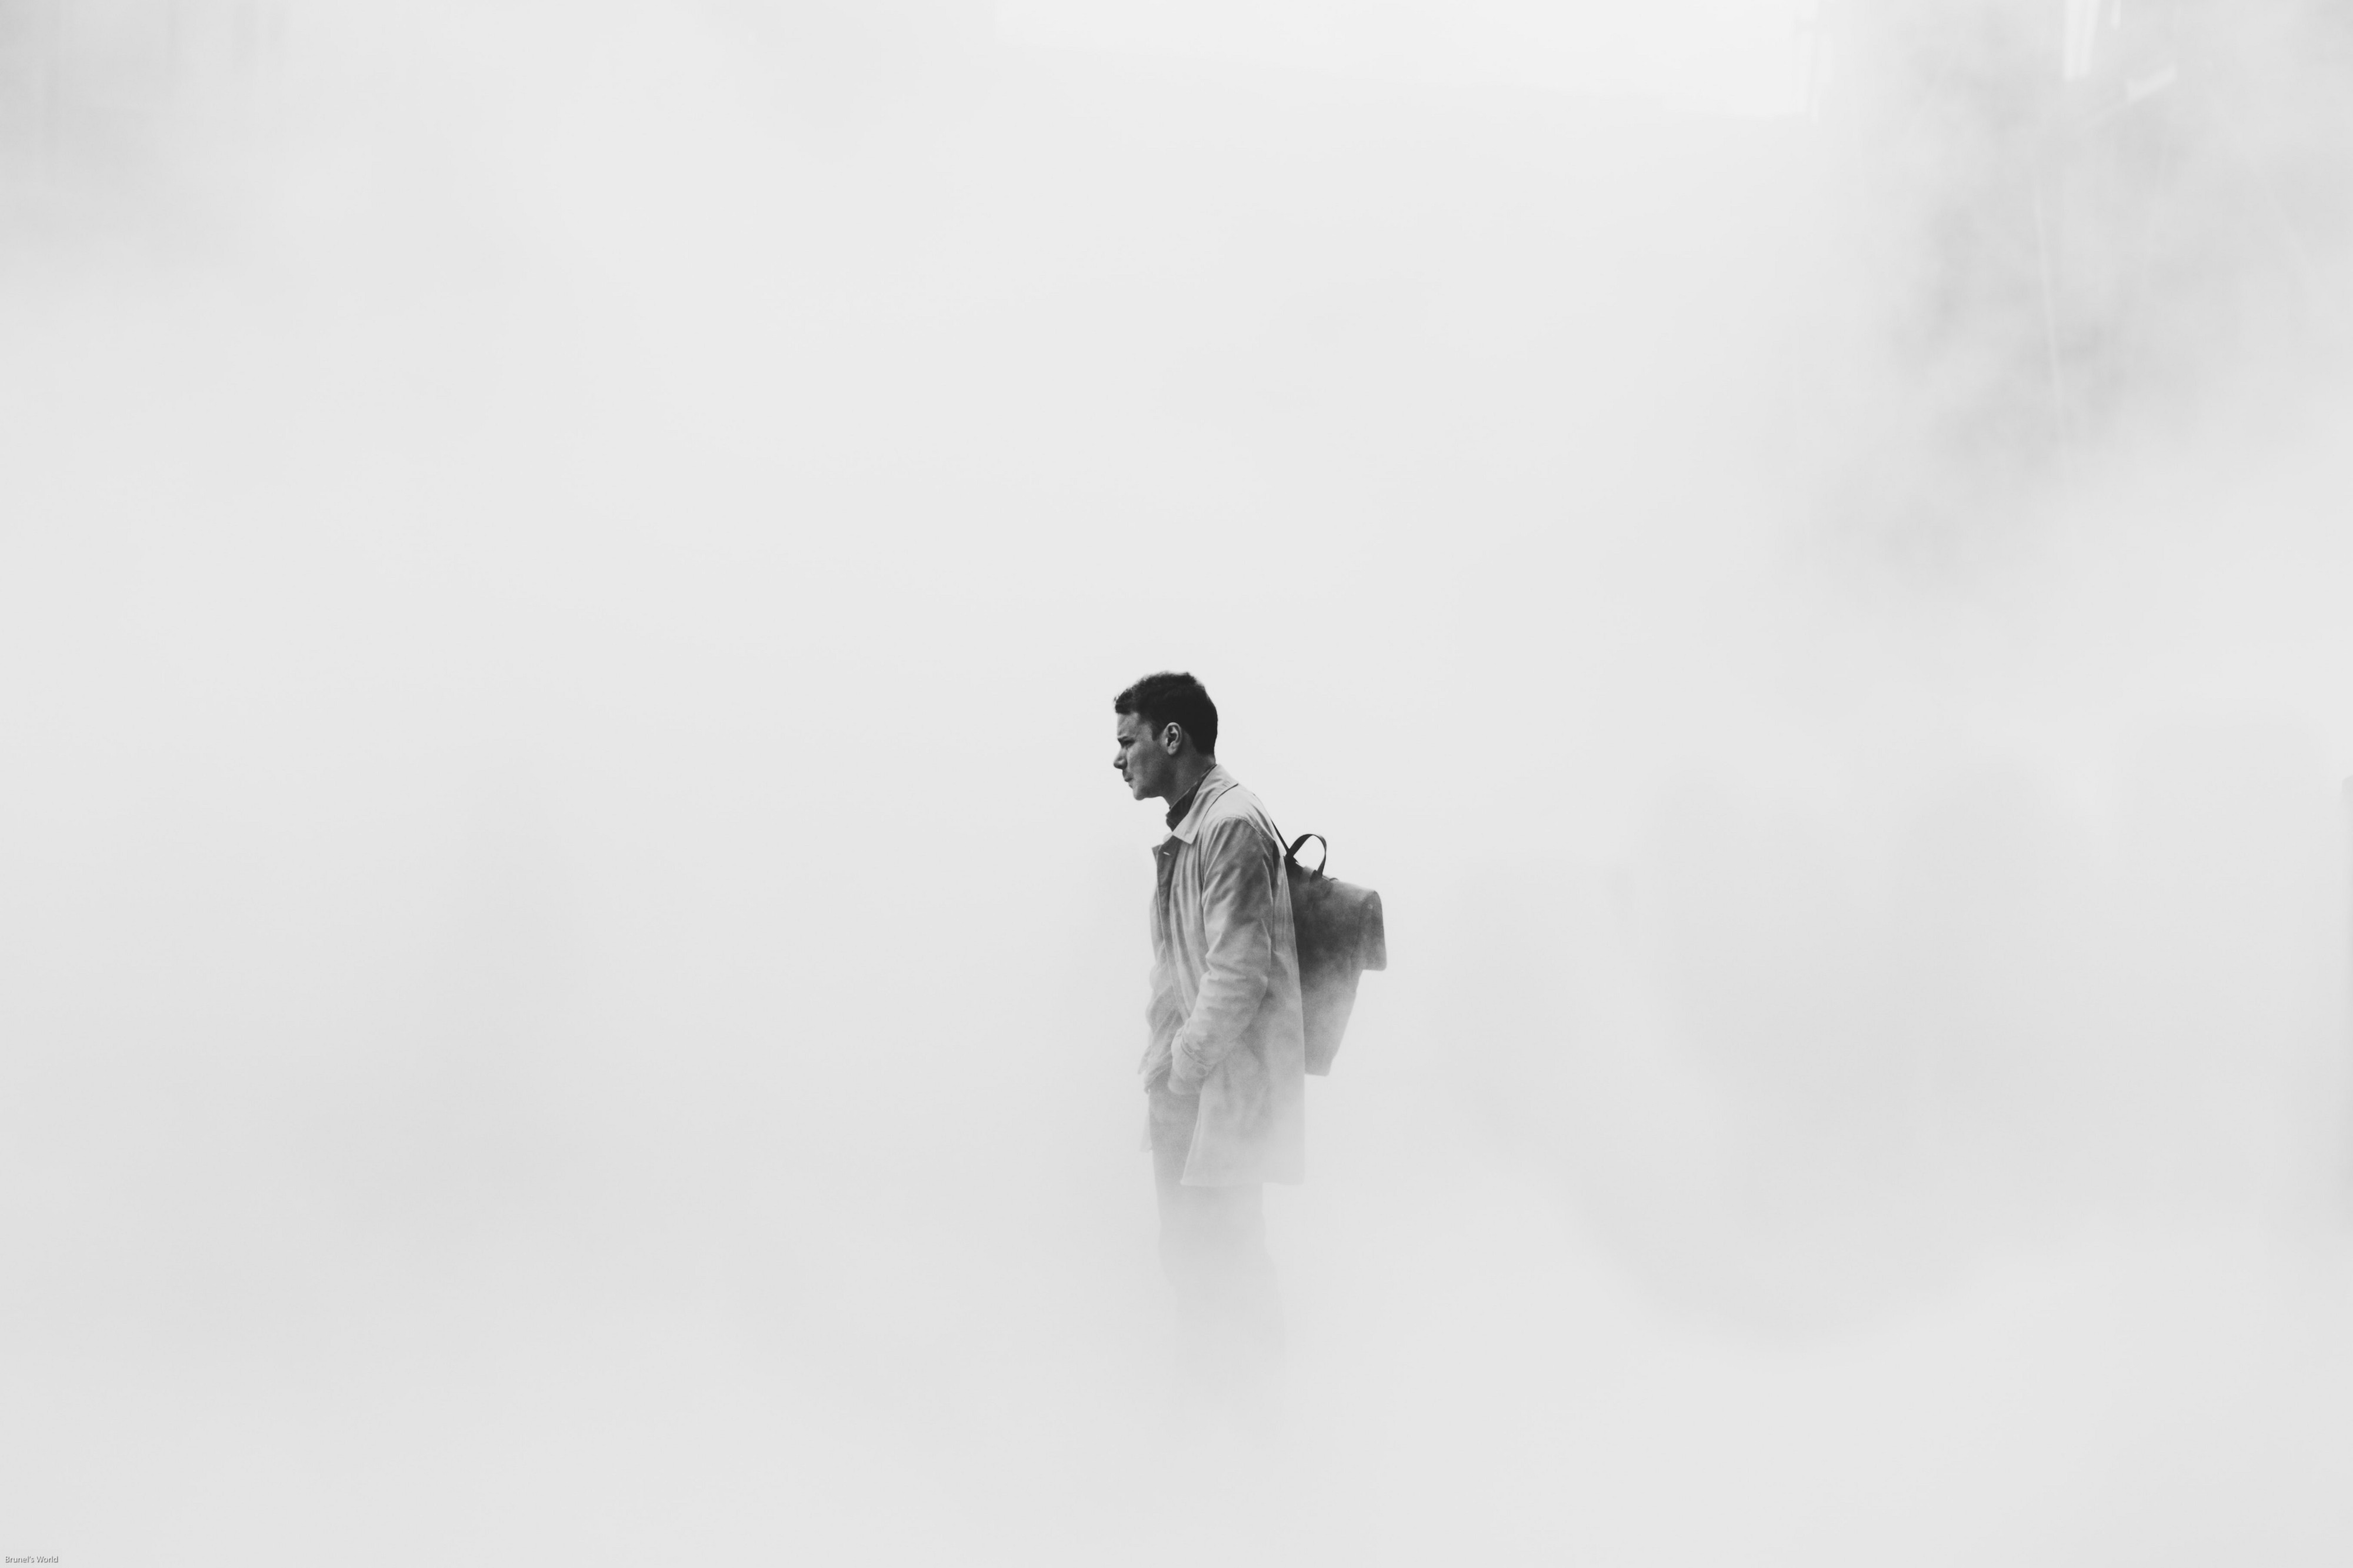 black and white photo of man wearing backpack standing in a cloudy misty space